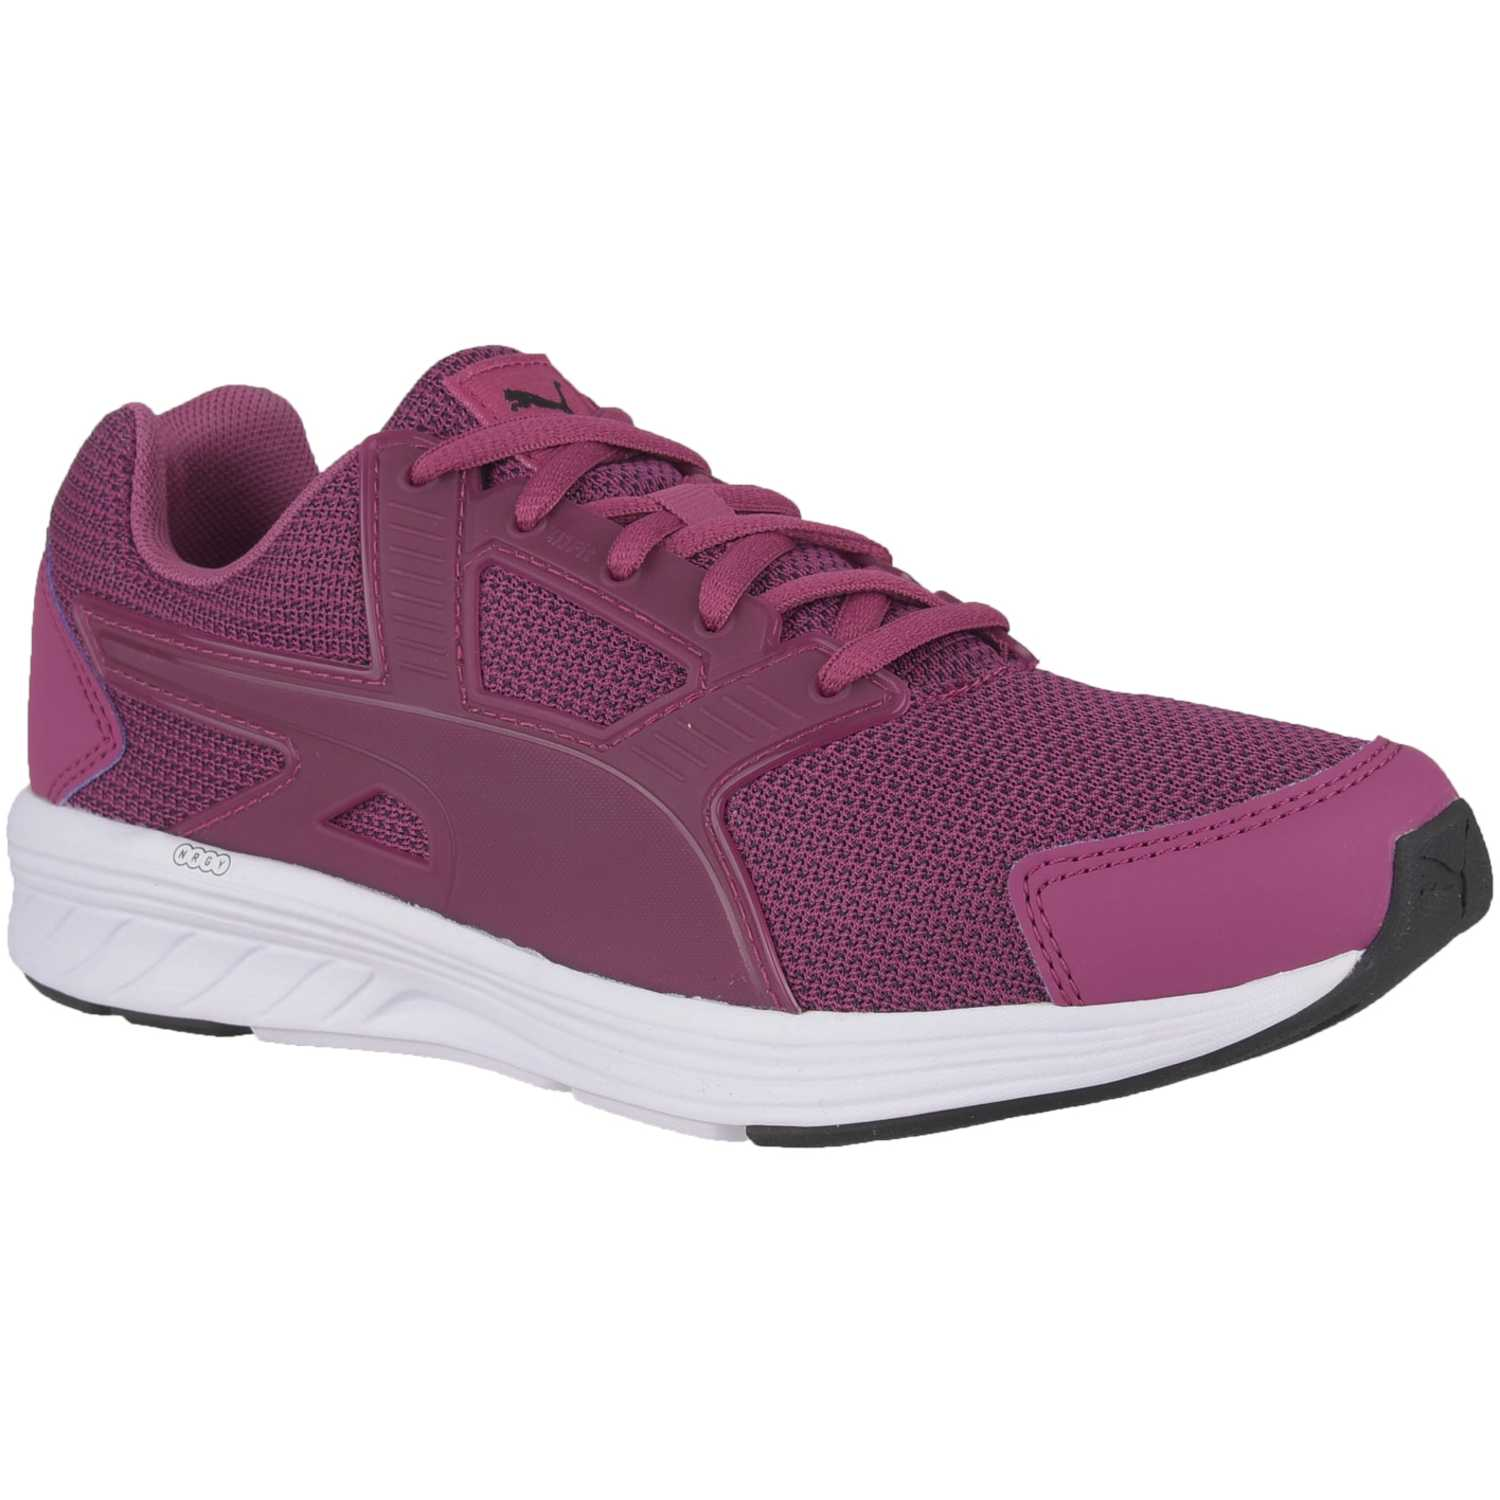 Puma nrgy driver nm Fucsia blanco Walking |